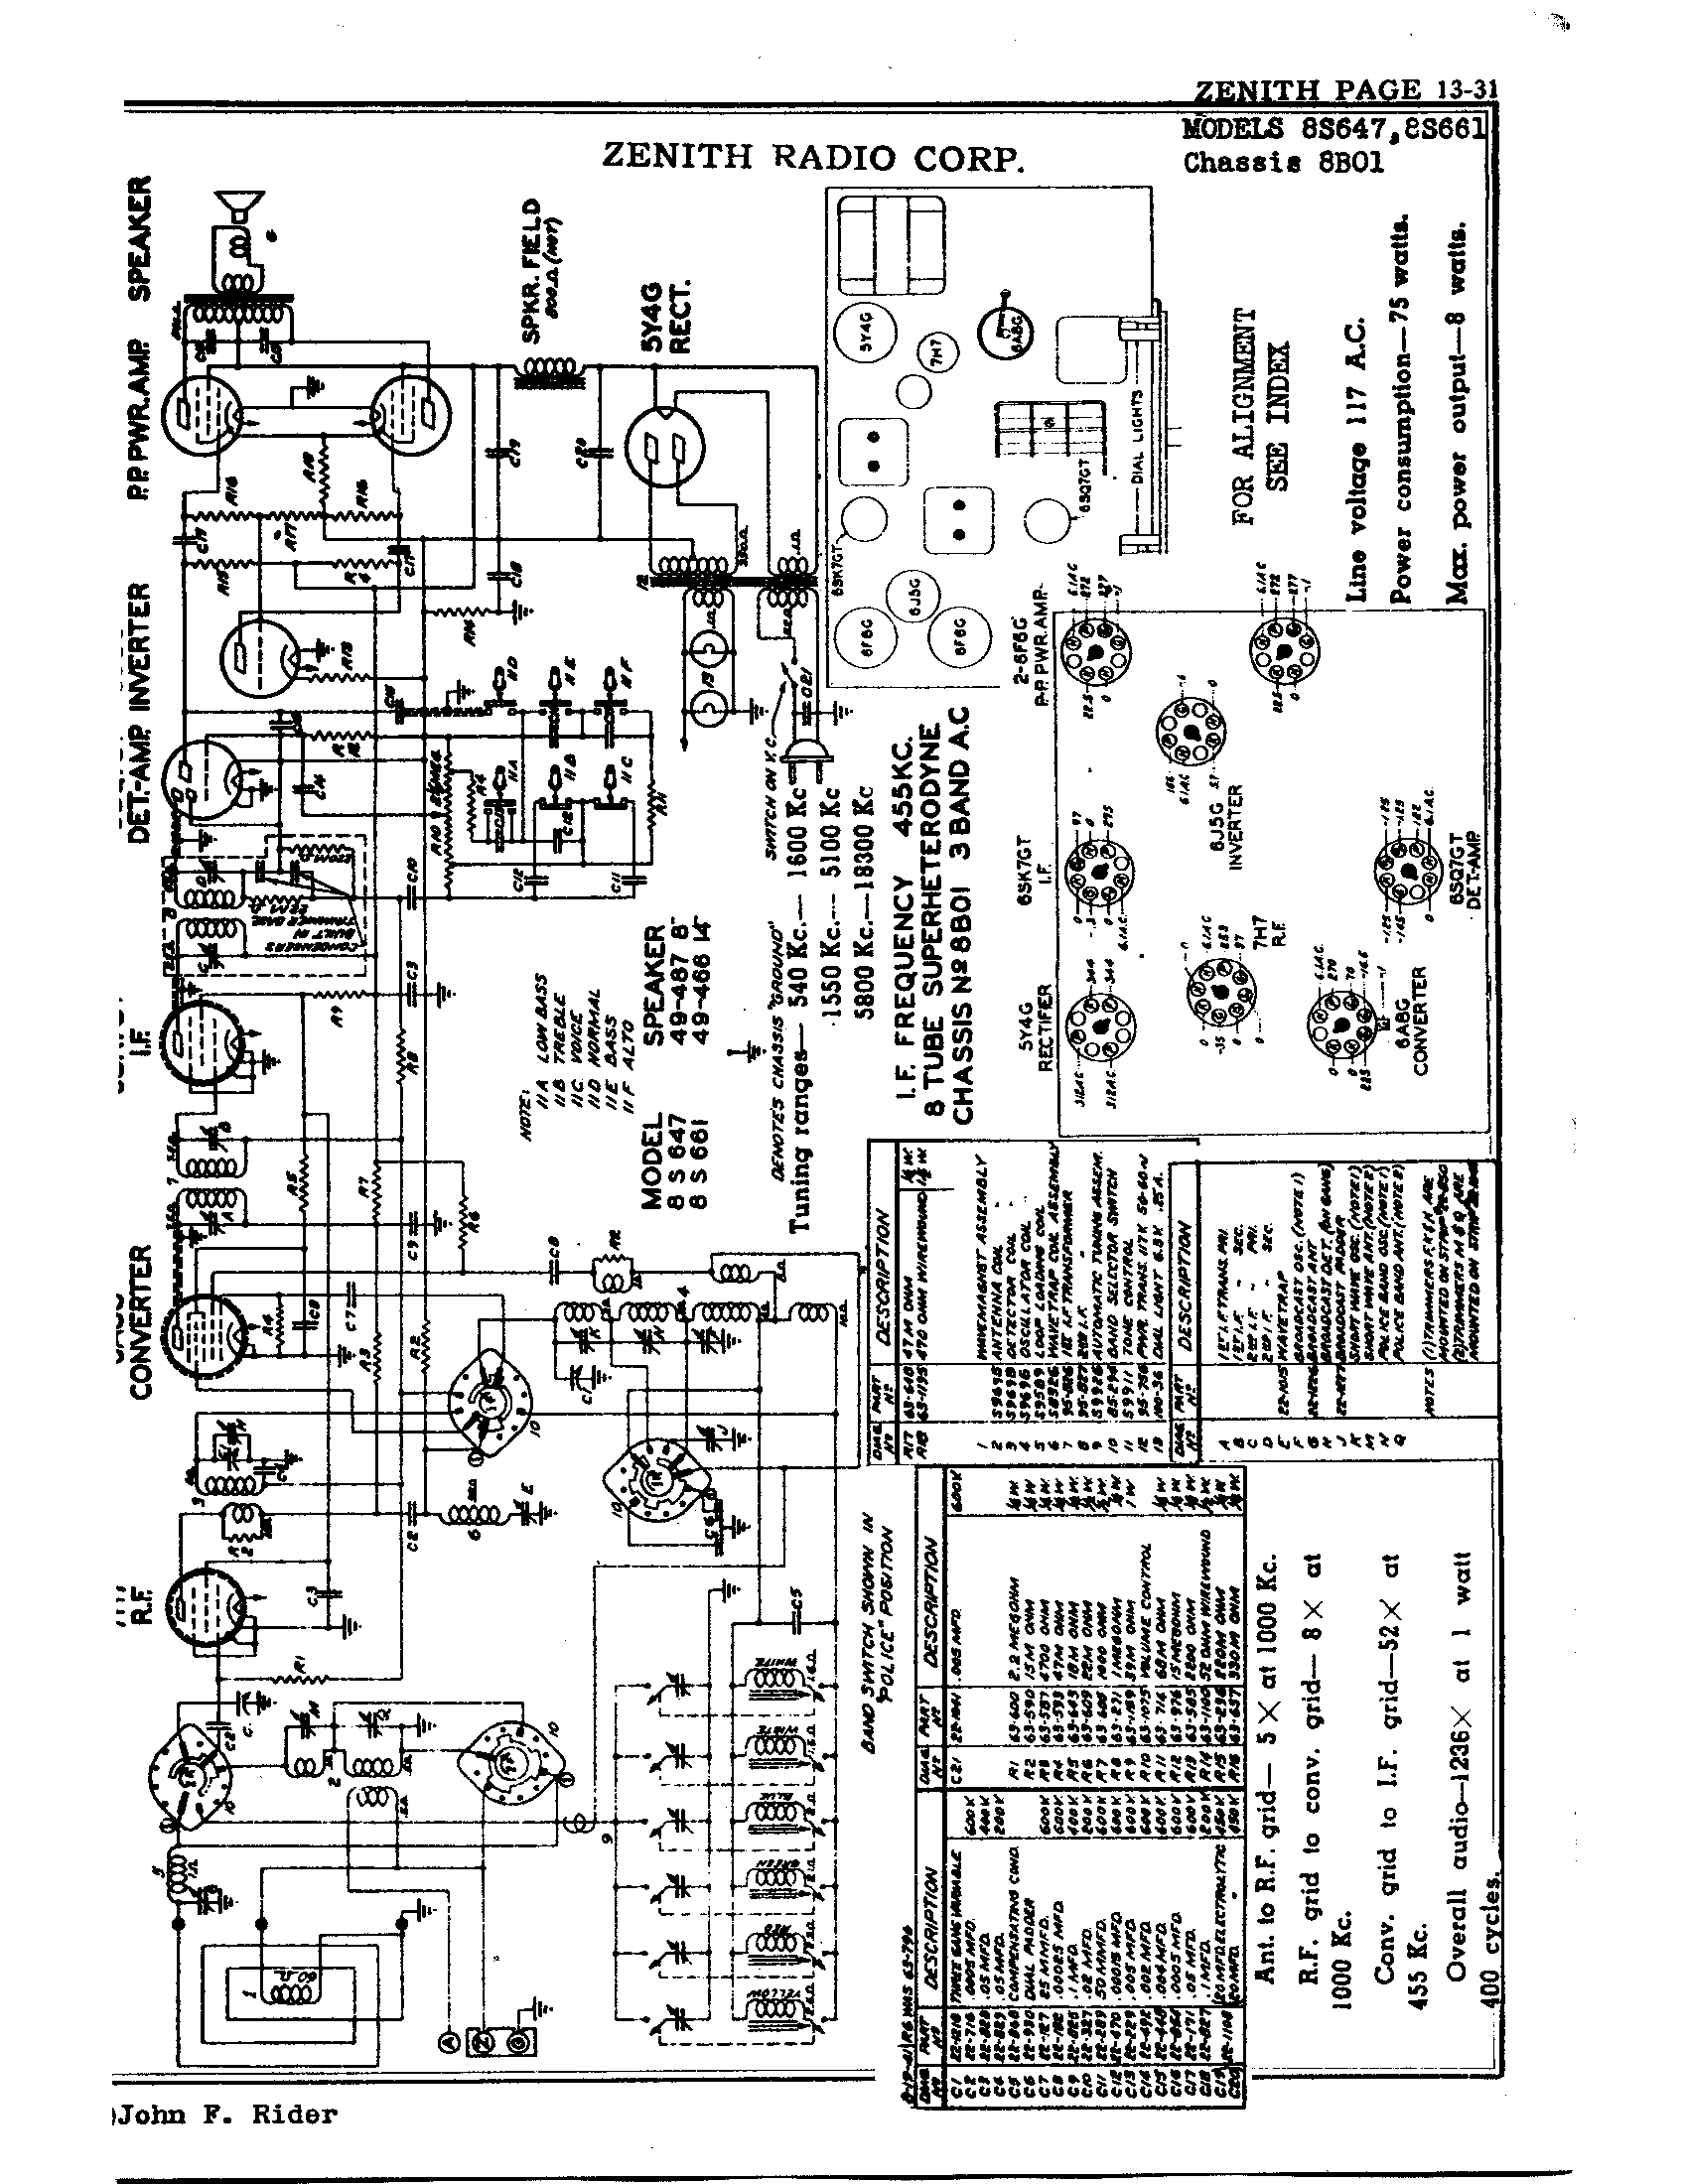 Zenith Radio Corp 8s661 Antique Electronic Supply. Page 1 9576 Kb Rider Manual Volume 13. Wiring. Zenith Tube Radio Schematics N73 1 At Scoala.co